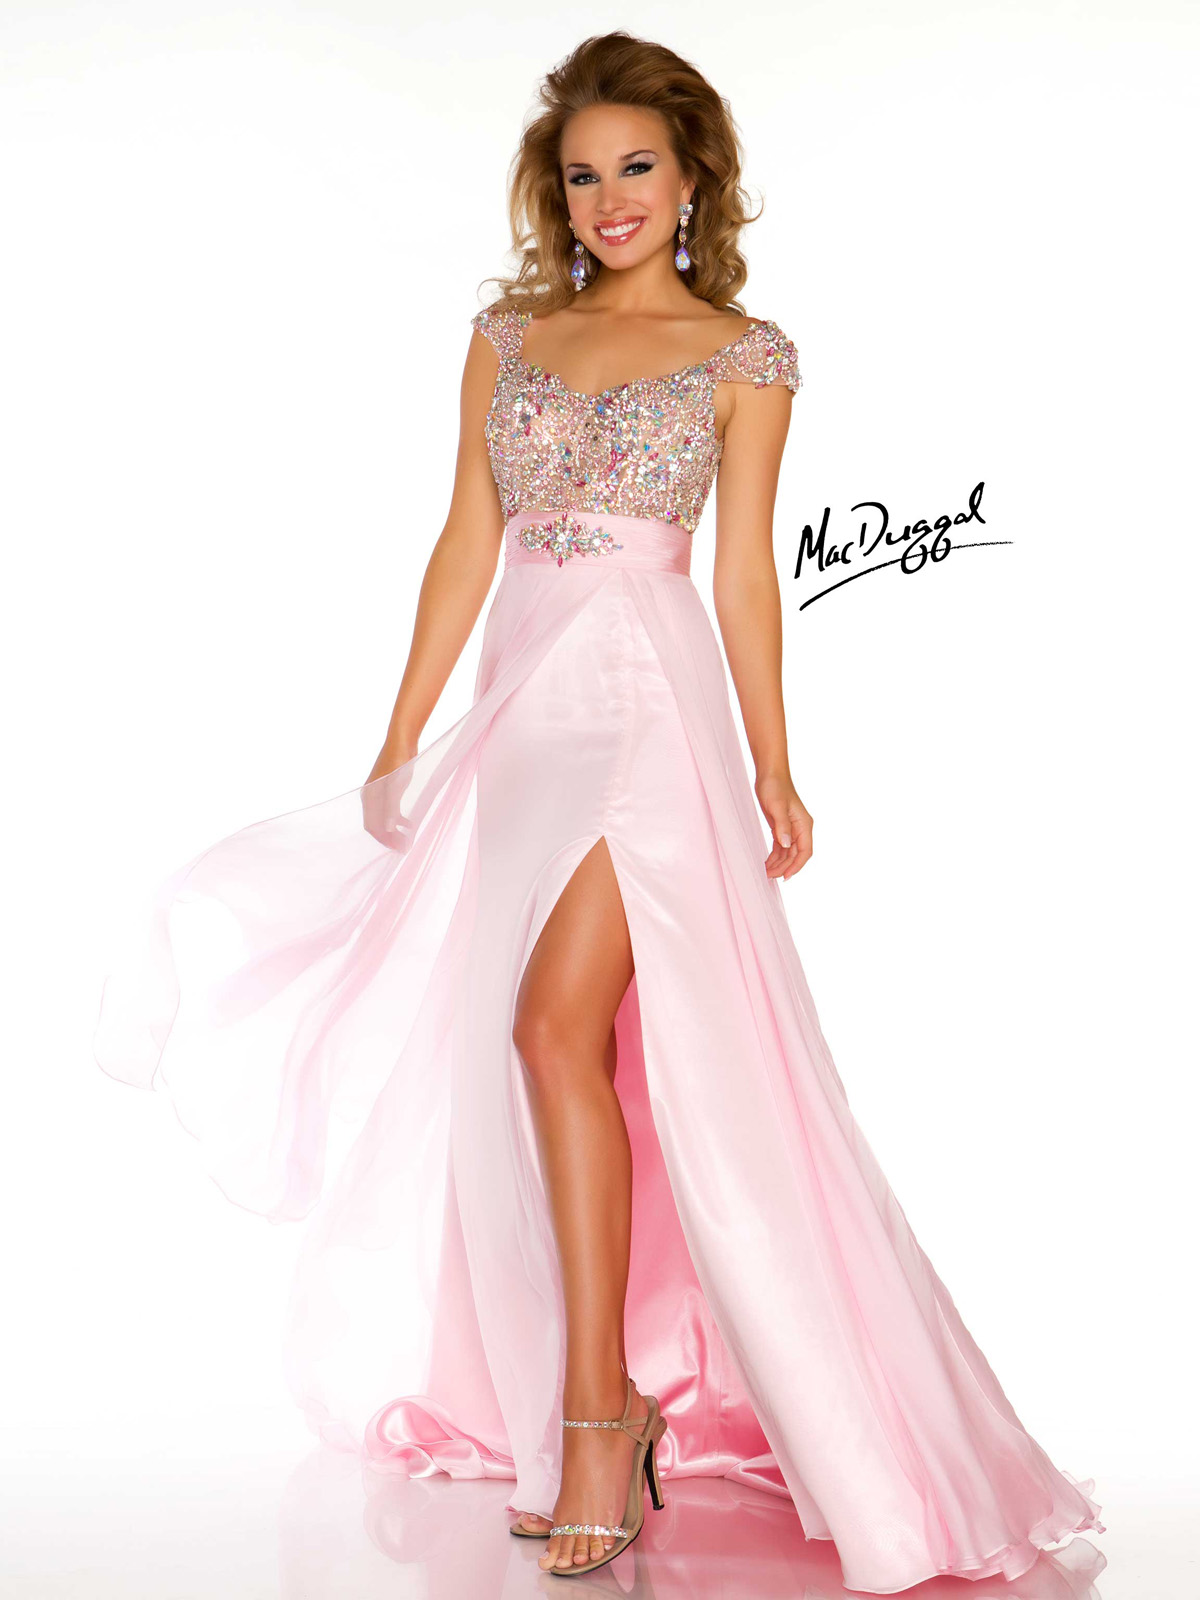 Capped Sleeve Beaded Bodice Pageant Dress Mac Duggal 42982P